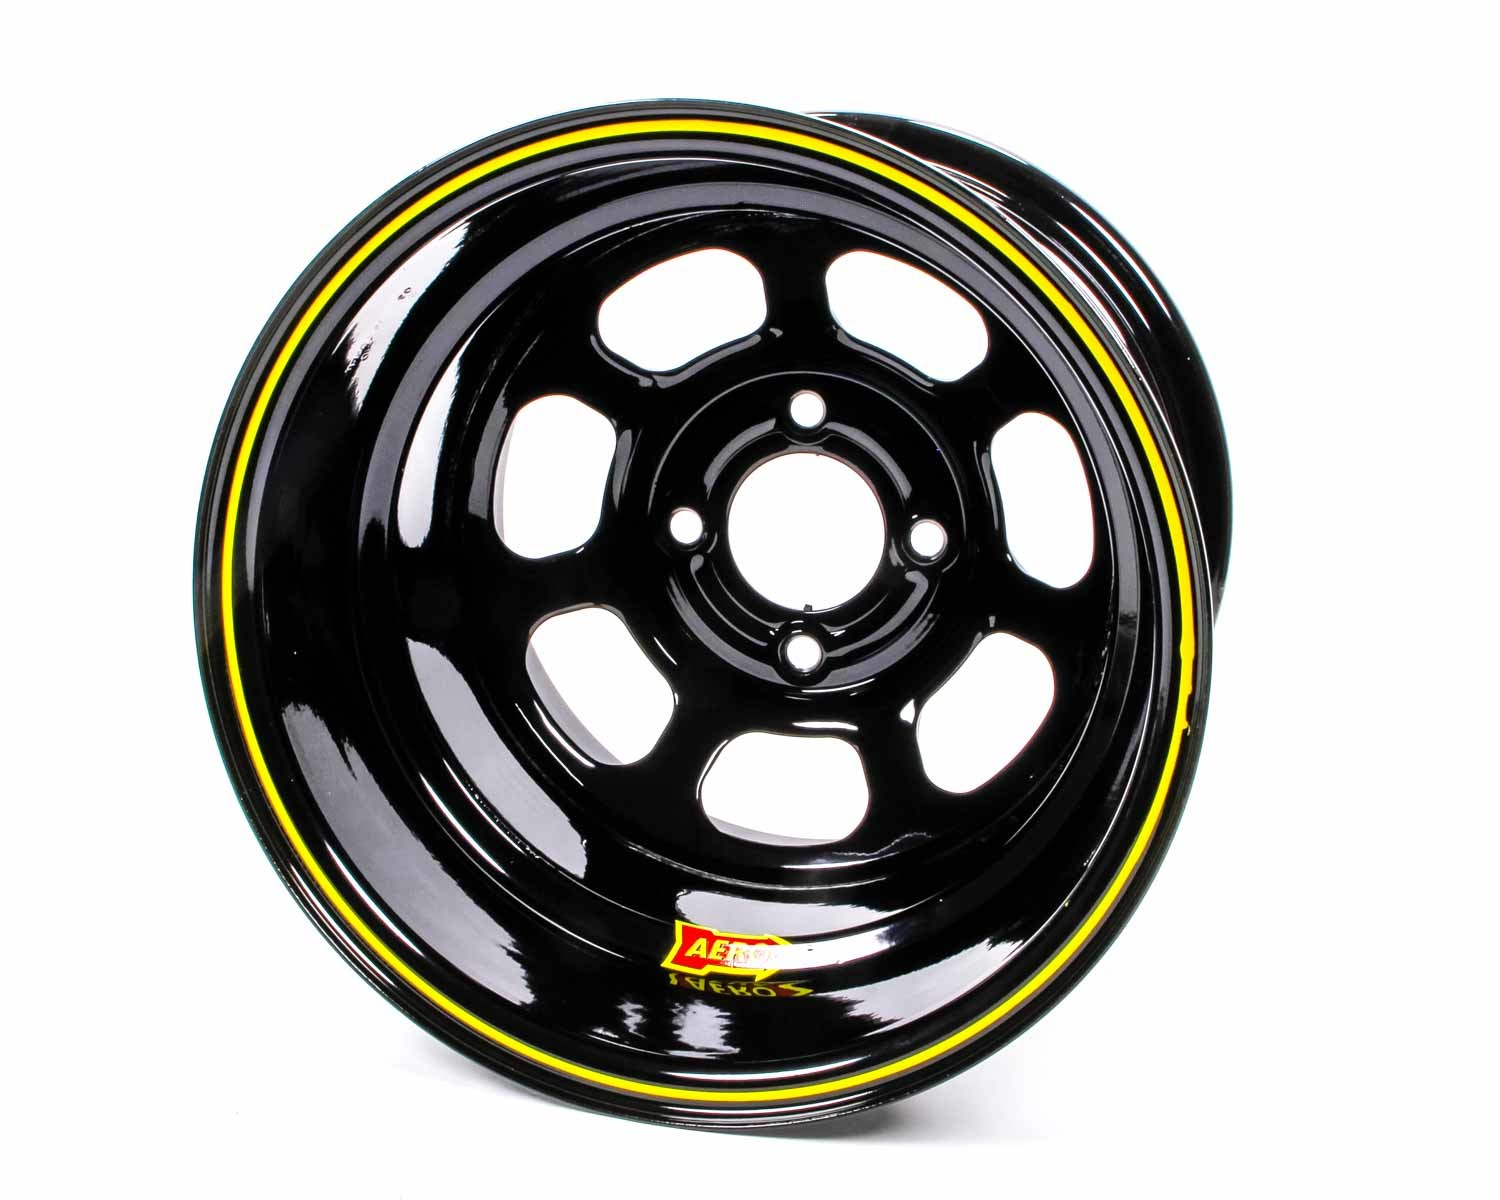 Aero Race 13x7 3.5in 4.25 Black  Wheel